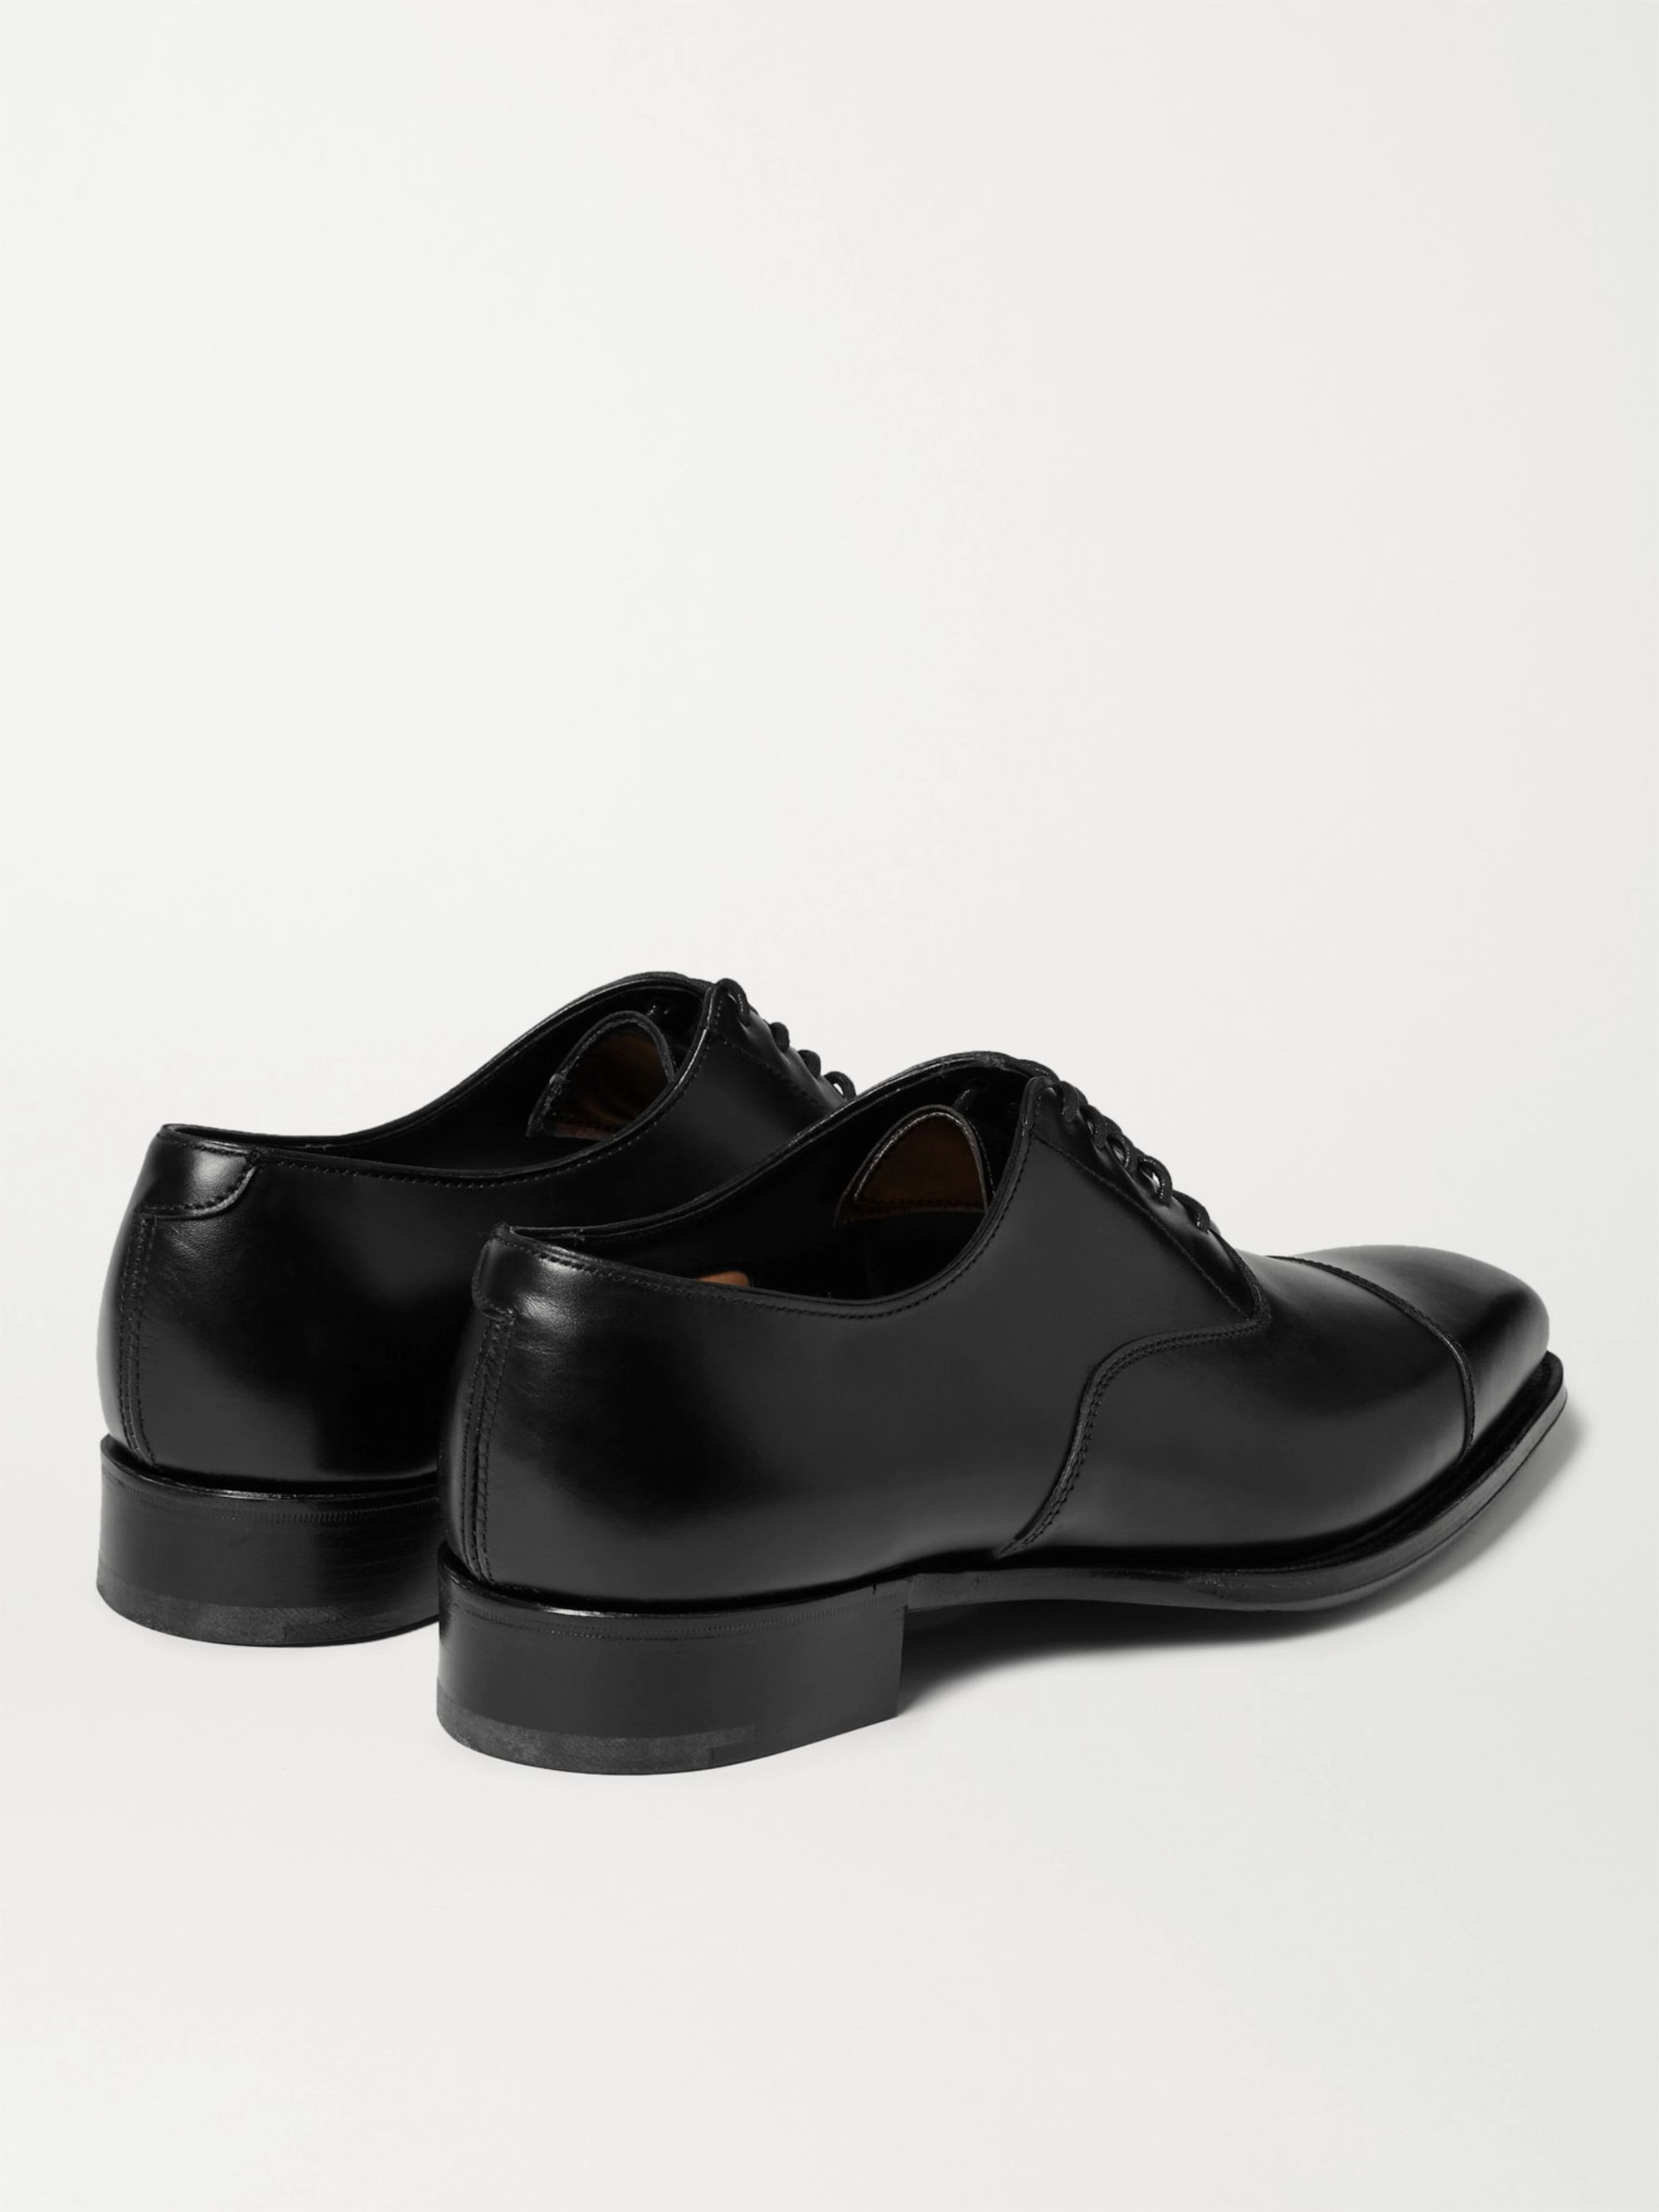 Kingsman + George Cleverley Leather Oxford Shoes